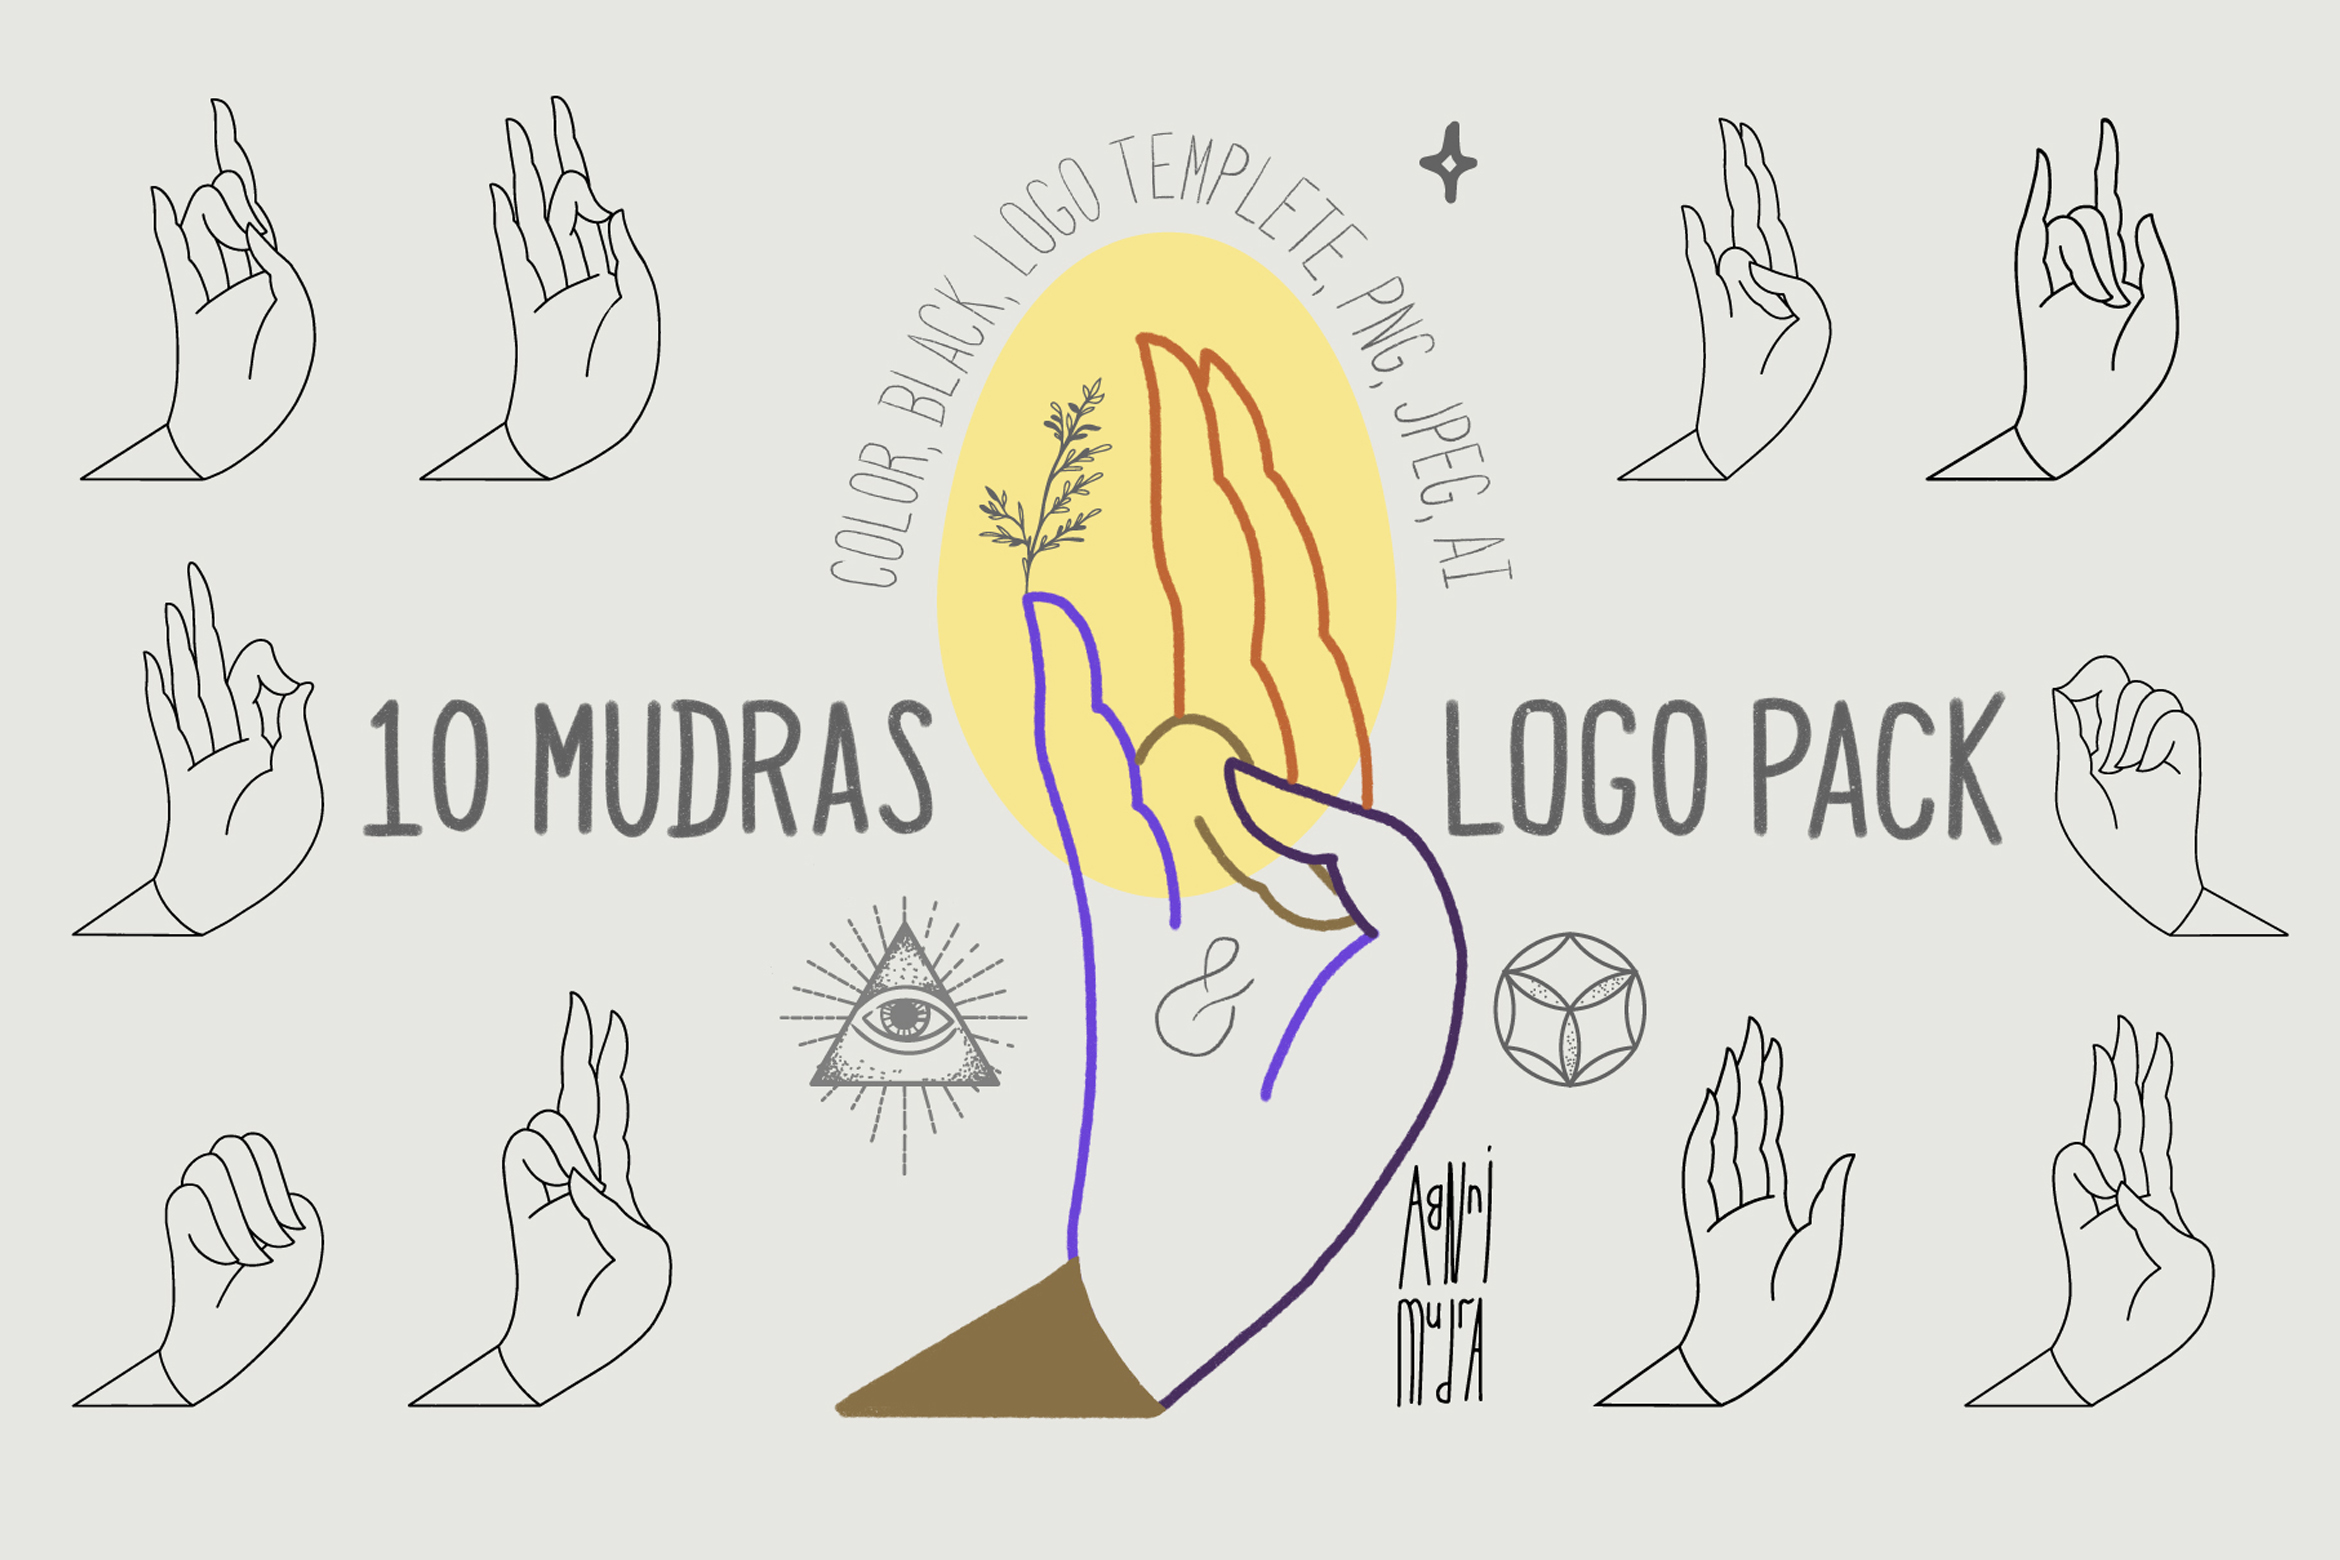 10 Mudras & Logo Pack. SVG/Ai/PNG example image 1